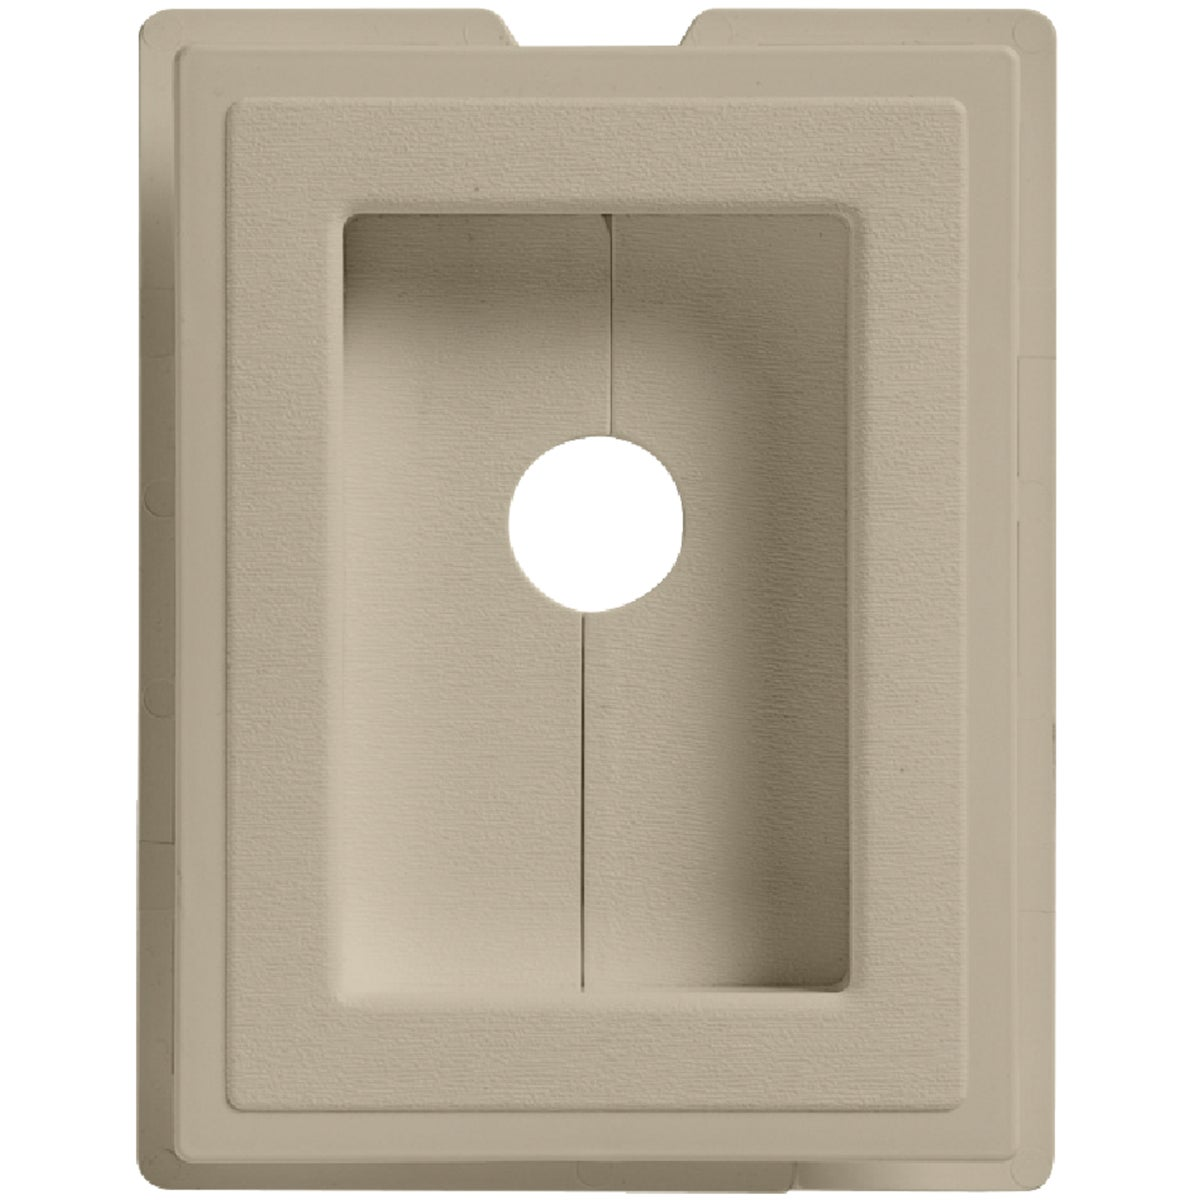 TAN RECESS J-BLOCK - MBLOCKR A7 by Alcoa Home Exteriors